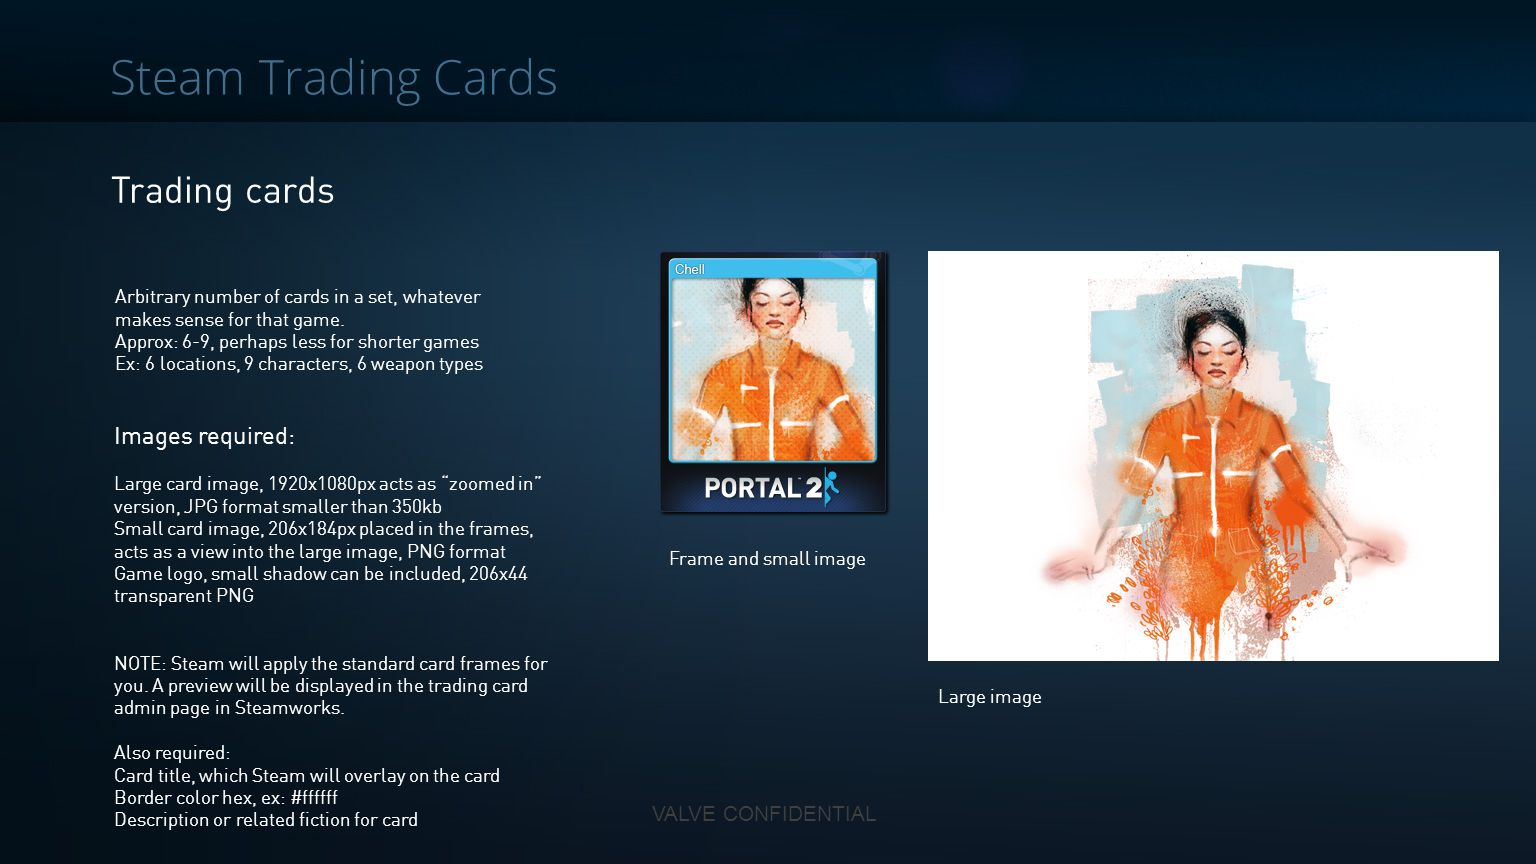 Steam Trading Cards Trading cards Images required: VALVE CONFIDENTIAL